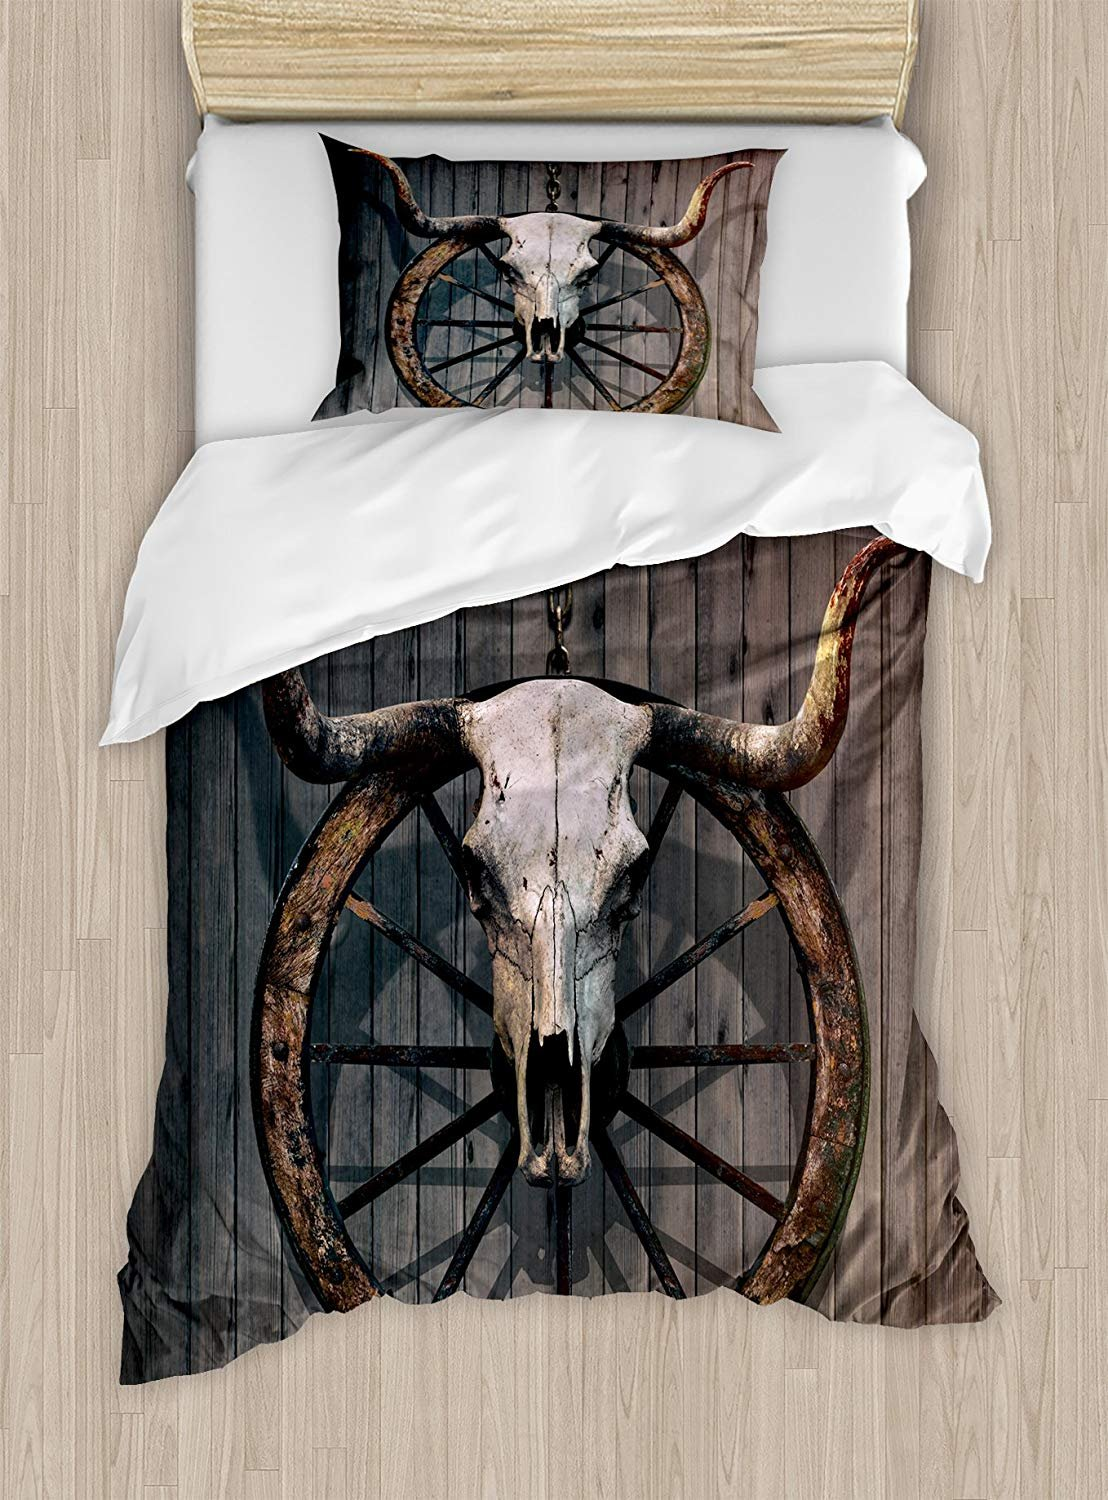 Fantasy Star Barn Wood Wagon Wheel Duvet Cover Set,Long Horned Bull Skull and Old West Wagon Wheel on Rustic Wall,Include 1 Flat Sheet 1 Duvet Cover and 2 Pillow Cases